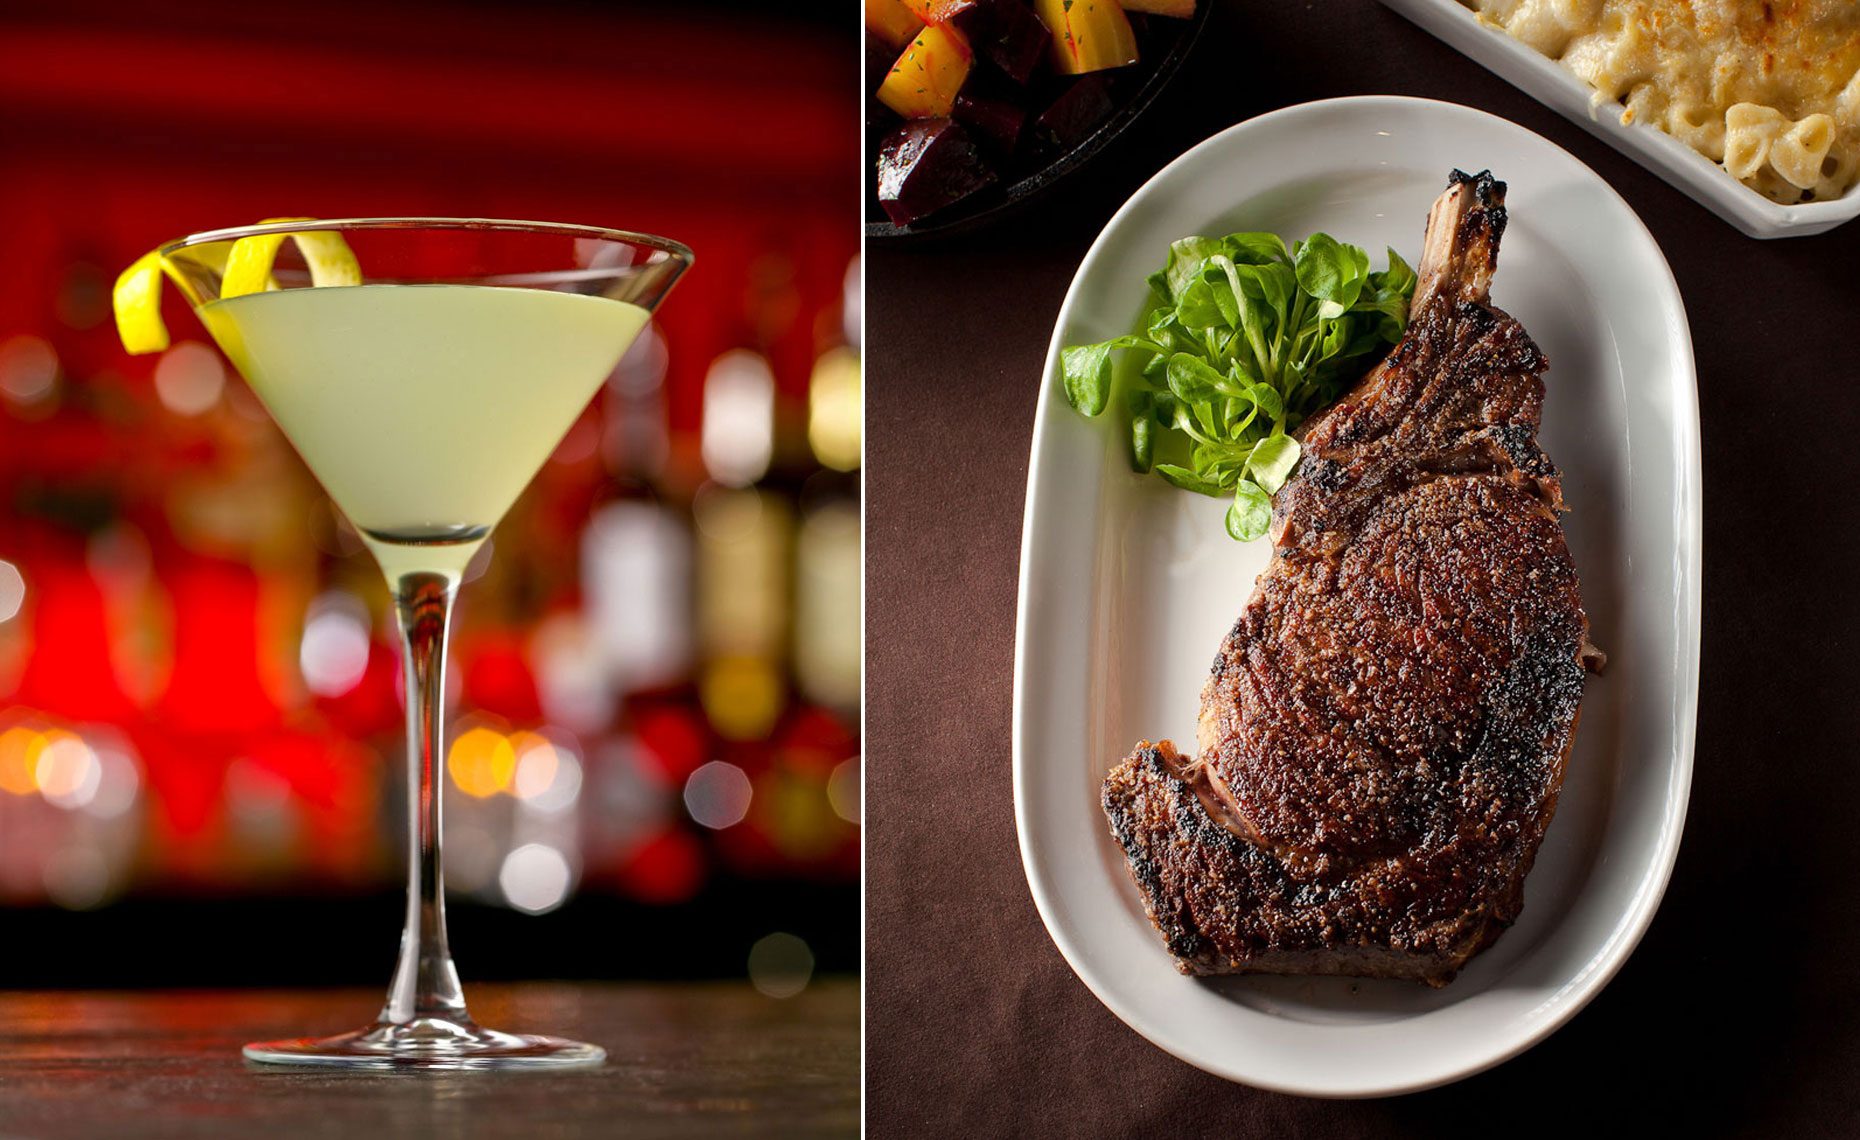 jeff-green-cocktail-with-lemon-twist-and-steak-entree